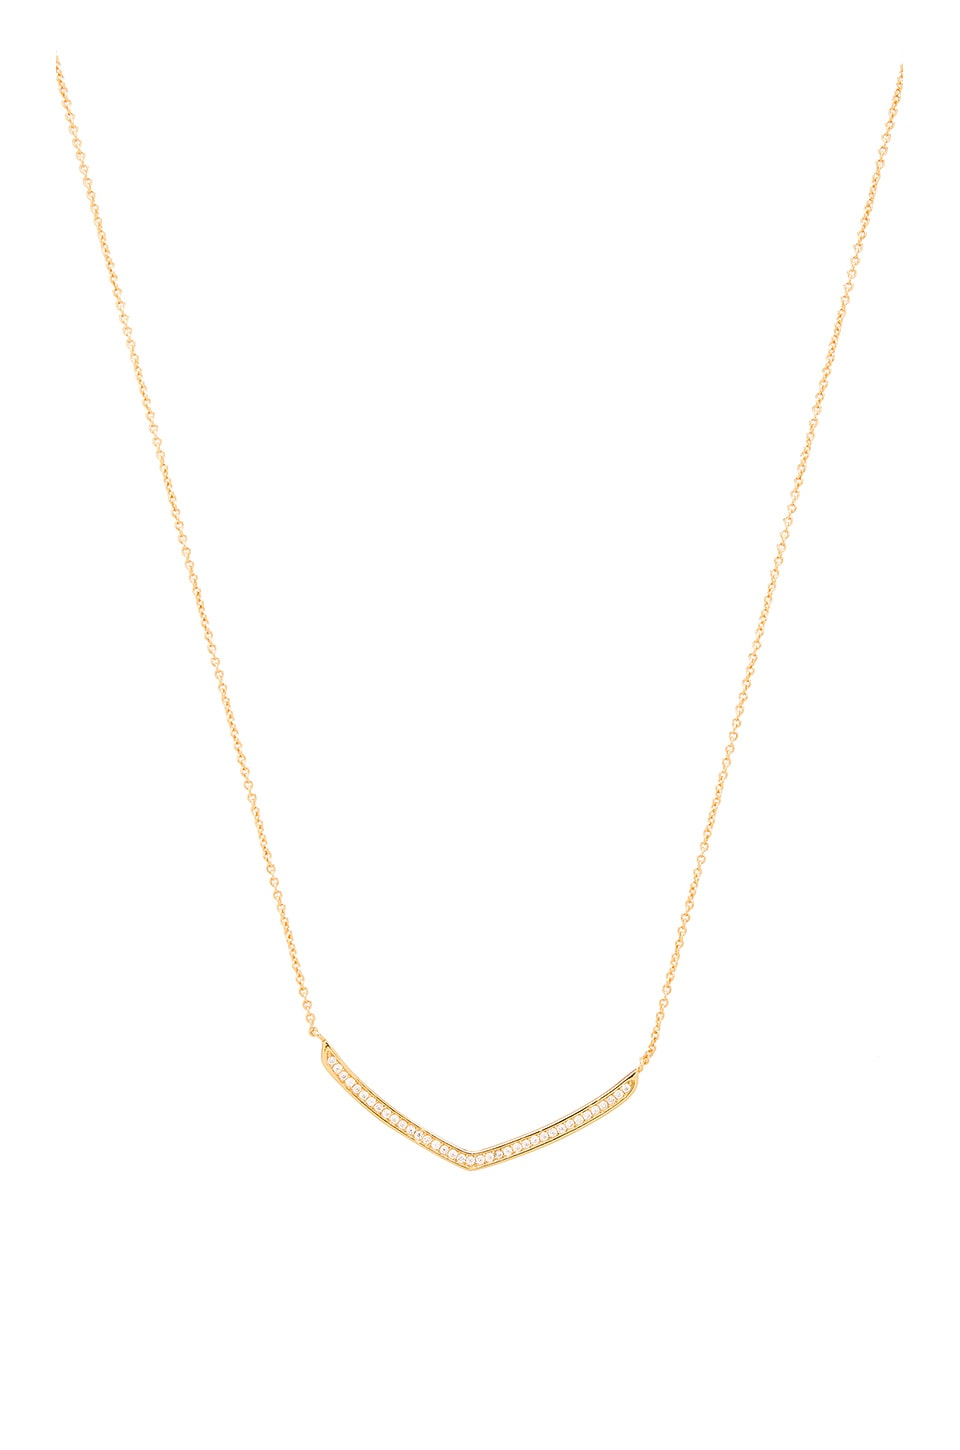 gorjana Cress Shimmer Necklace in Gold